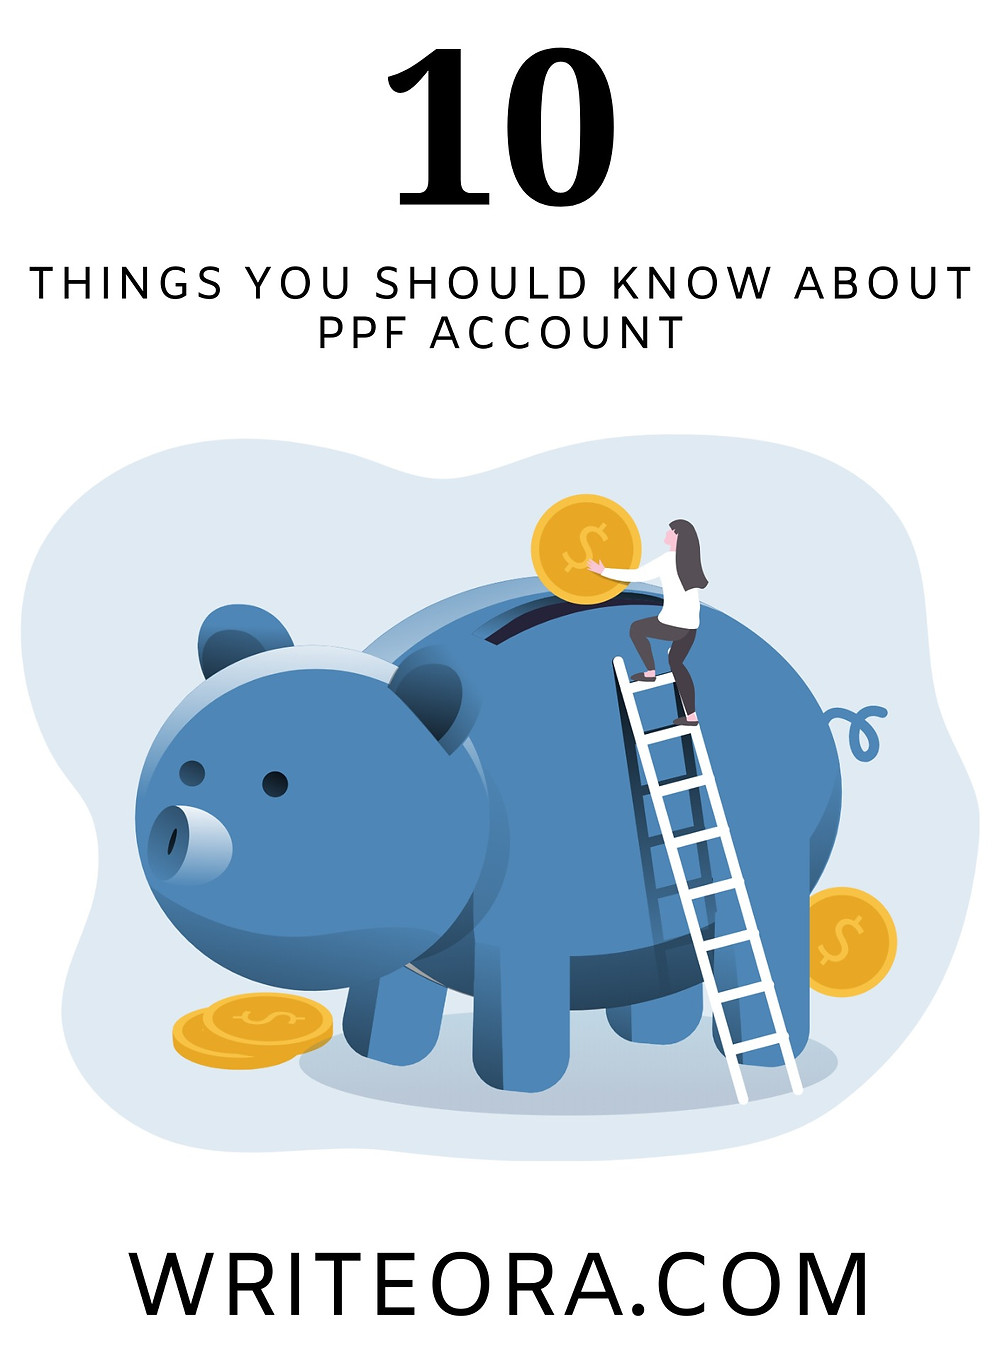 PPF: 10 THINGS YOU SHOULD KNOW ABOUT PUBLIC PROVIDENT FUND